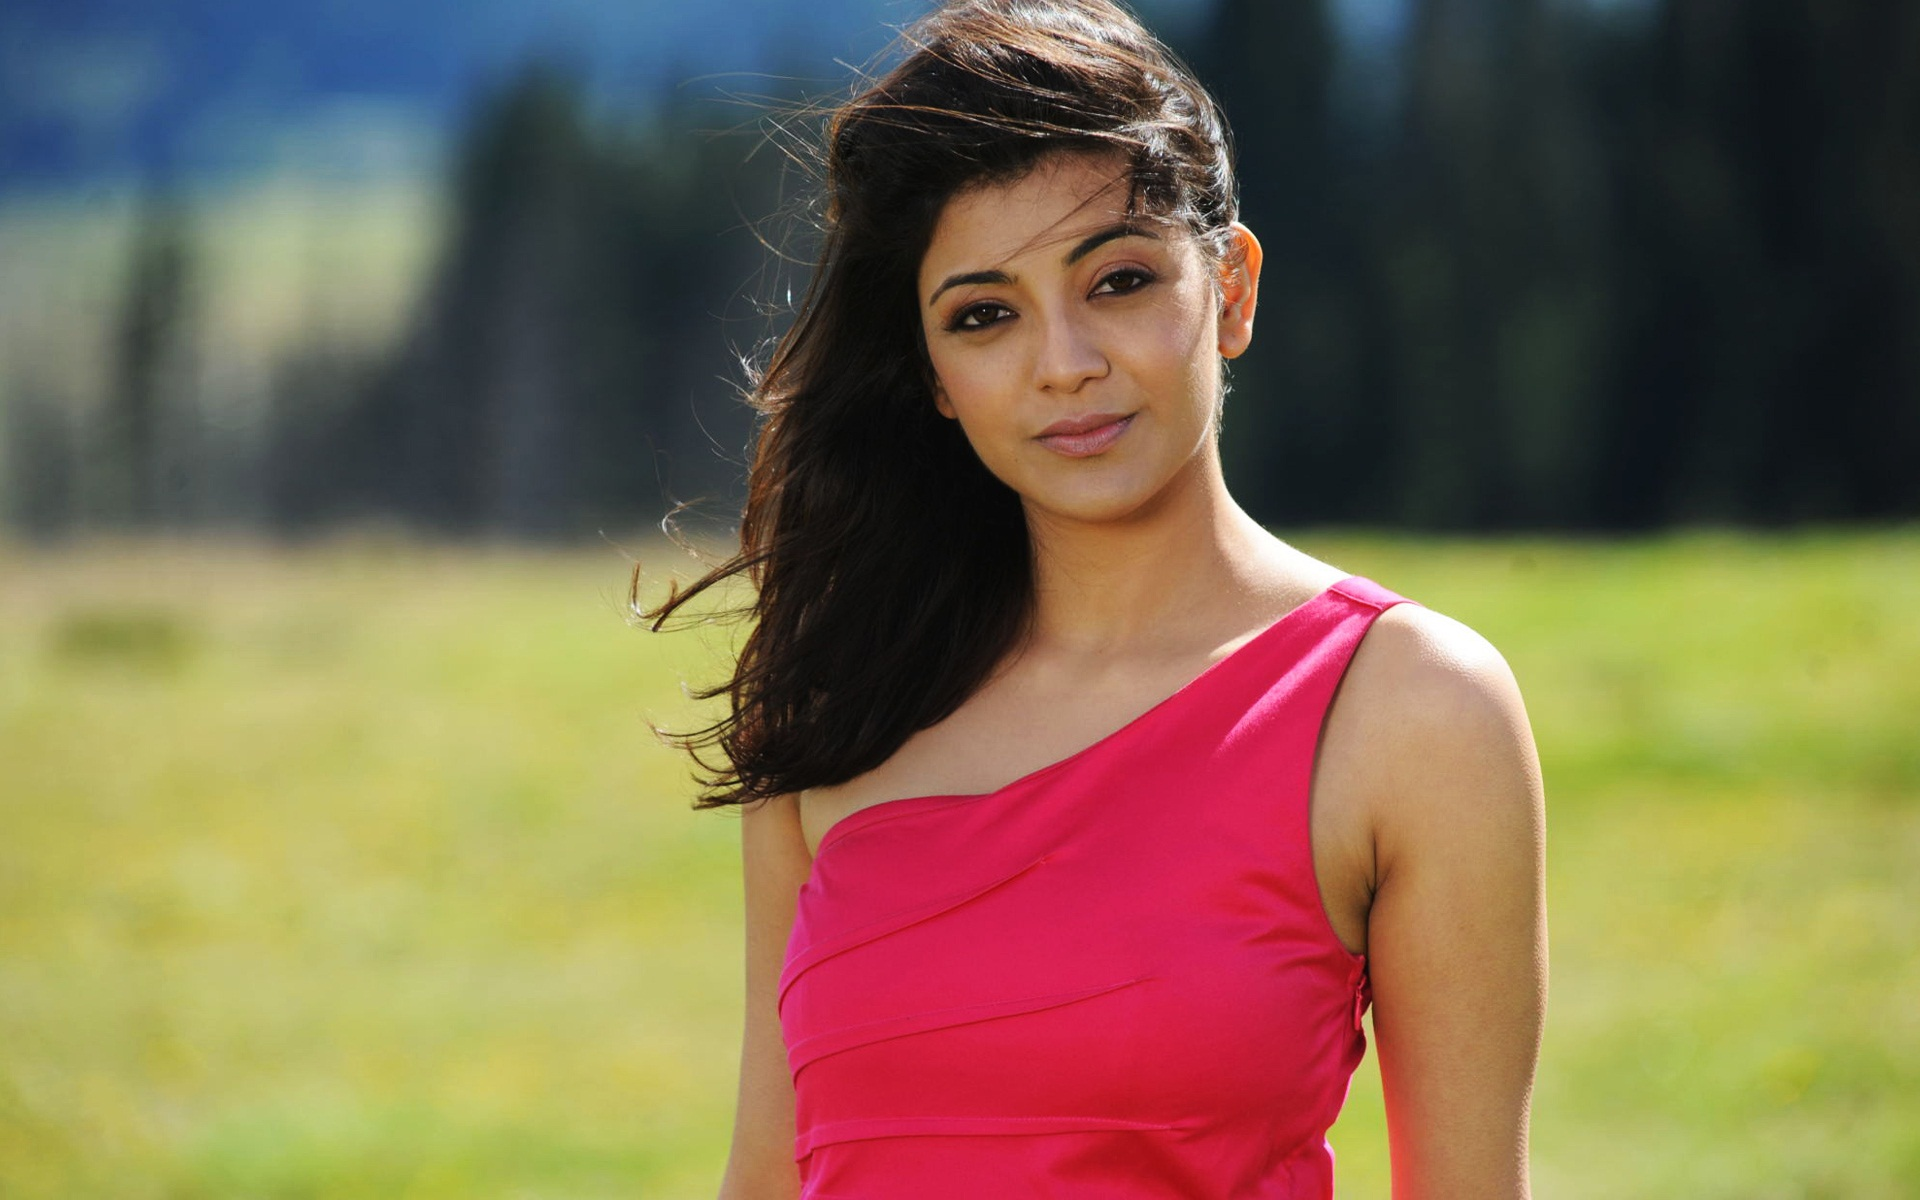 kajal agarwal full hd wallpaper and background image | 1920x1200